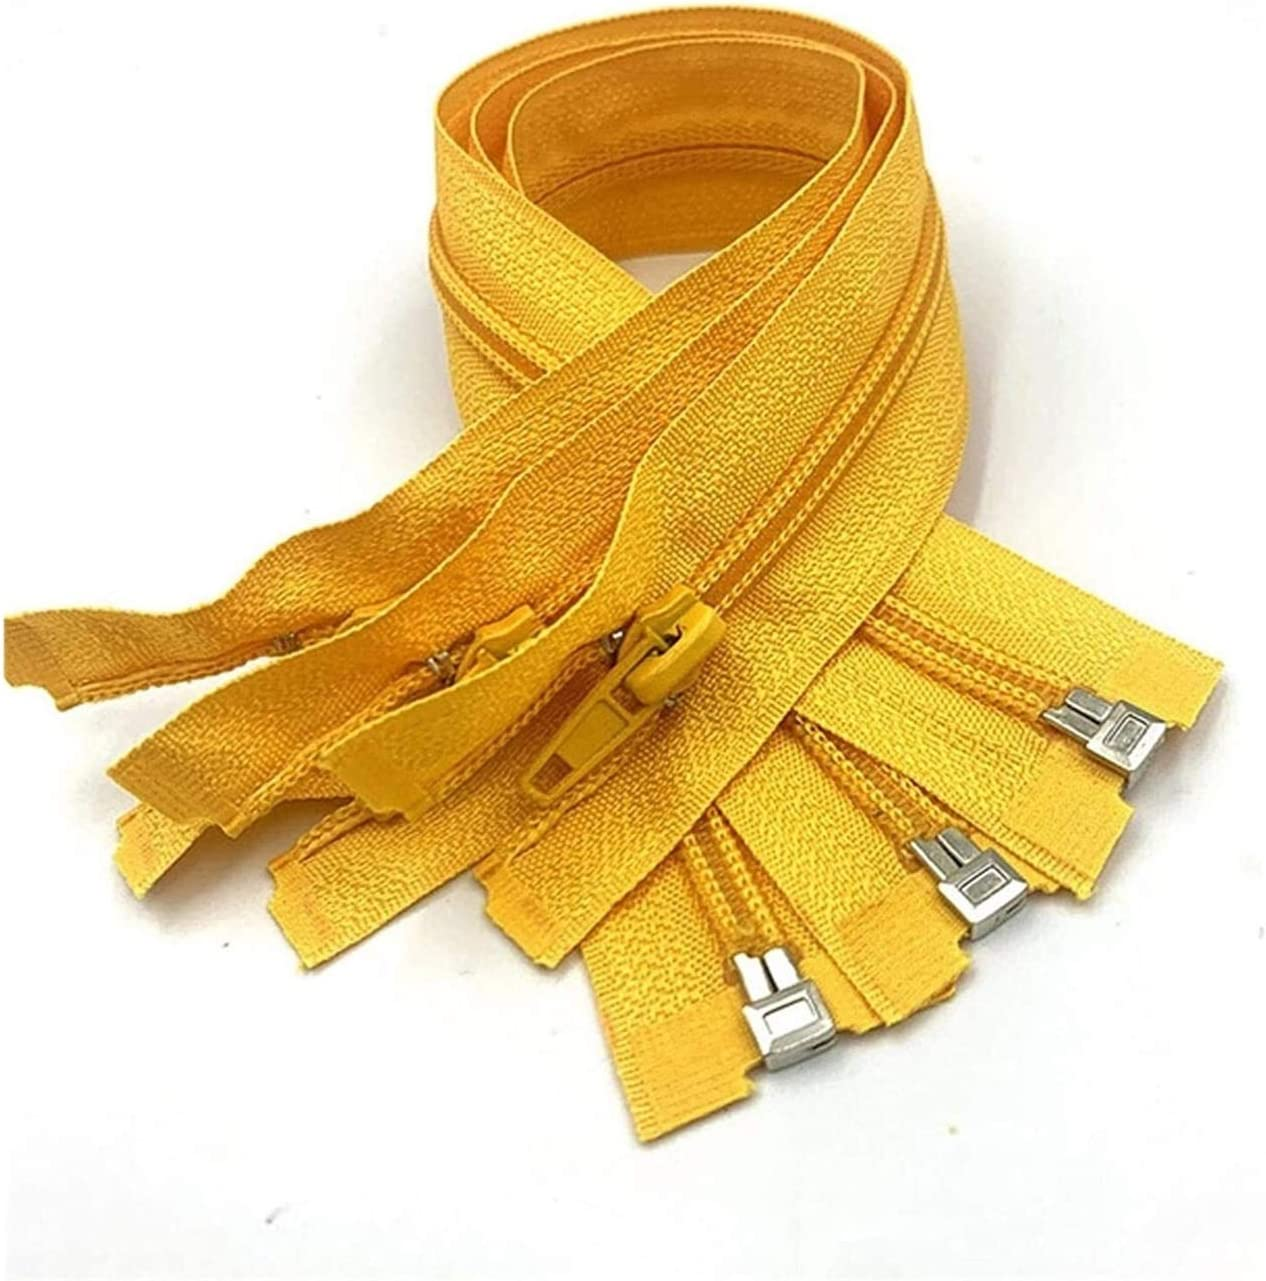 Decorative Zipper Open-End Nylon Coil Zippers for Sewing Nylon Z